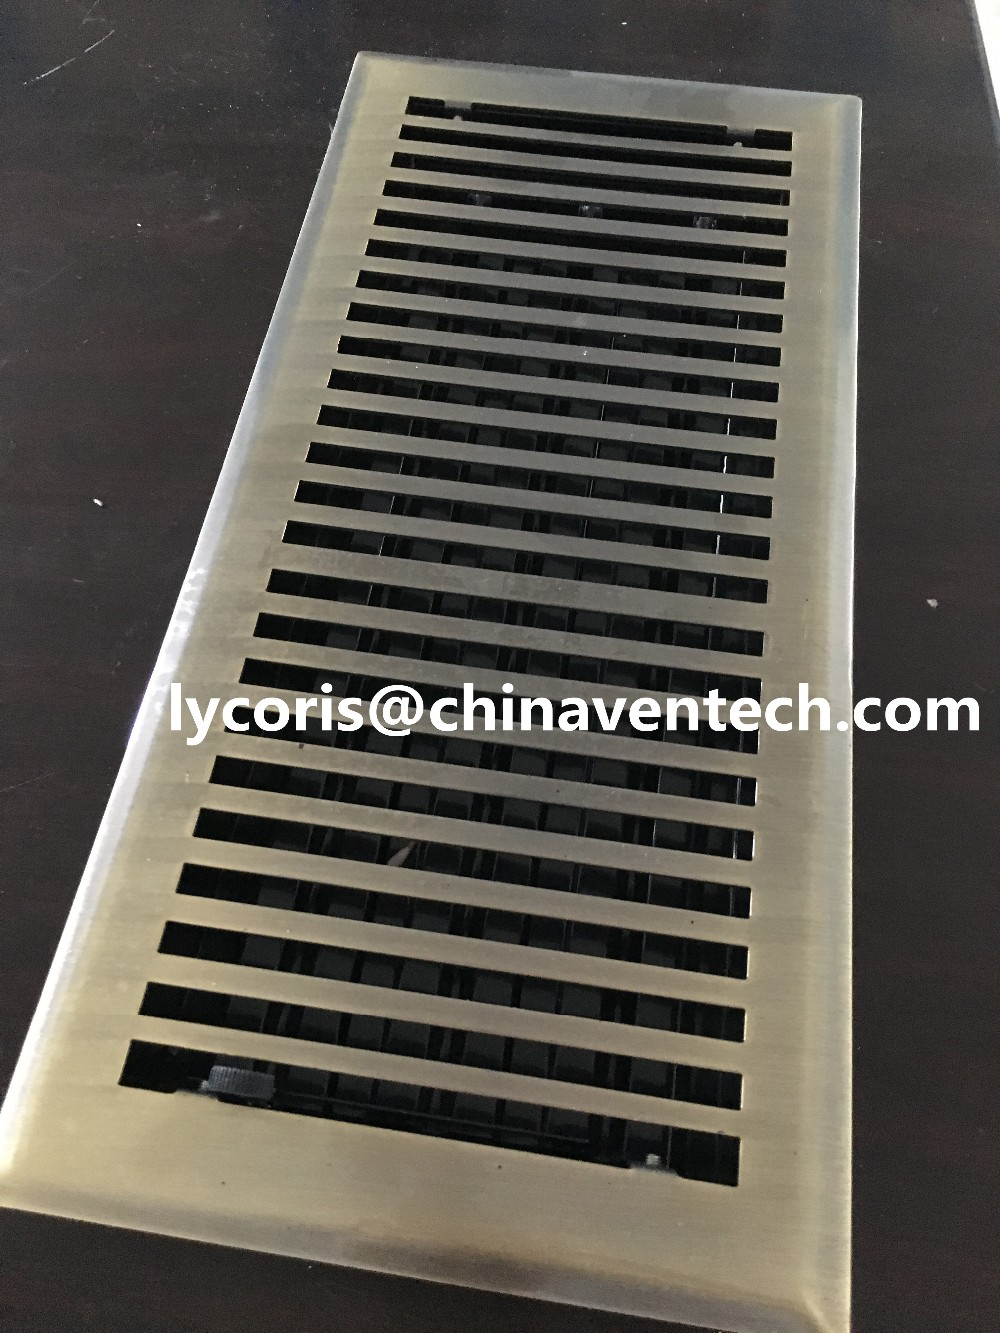 Mental Floor Grille Ceiling Grilles For Ventilation Air Grille Hvac